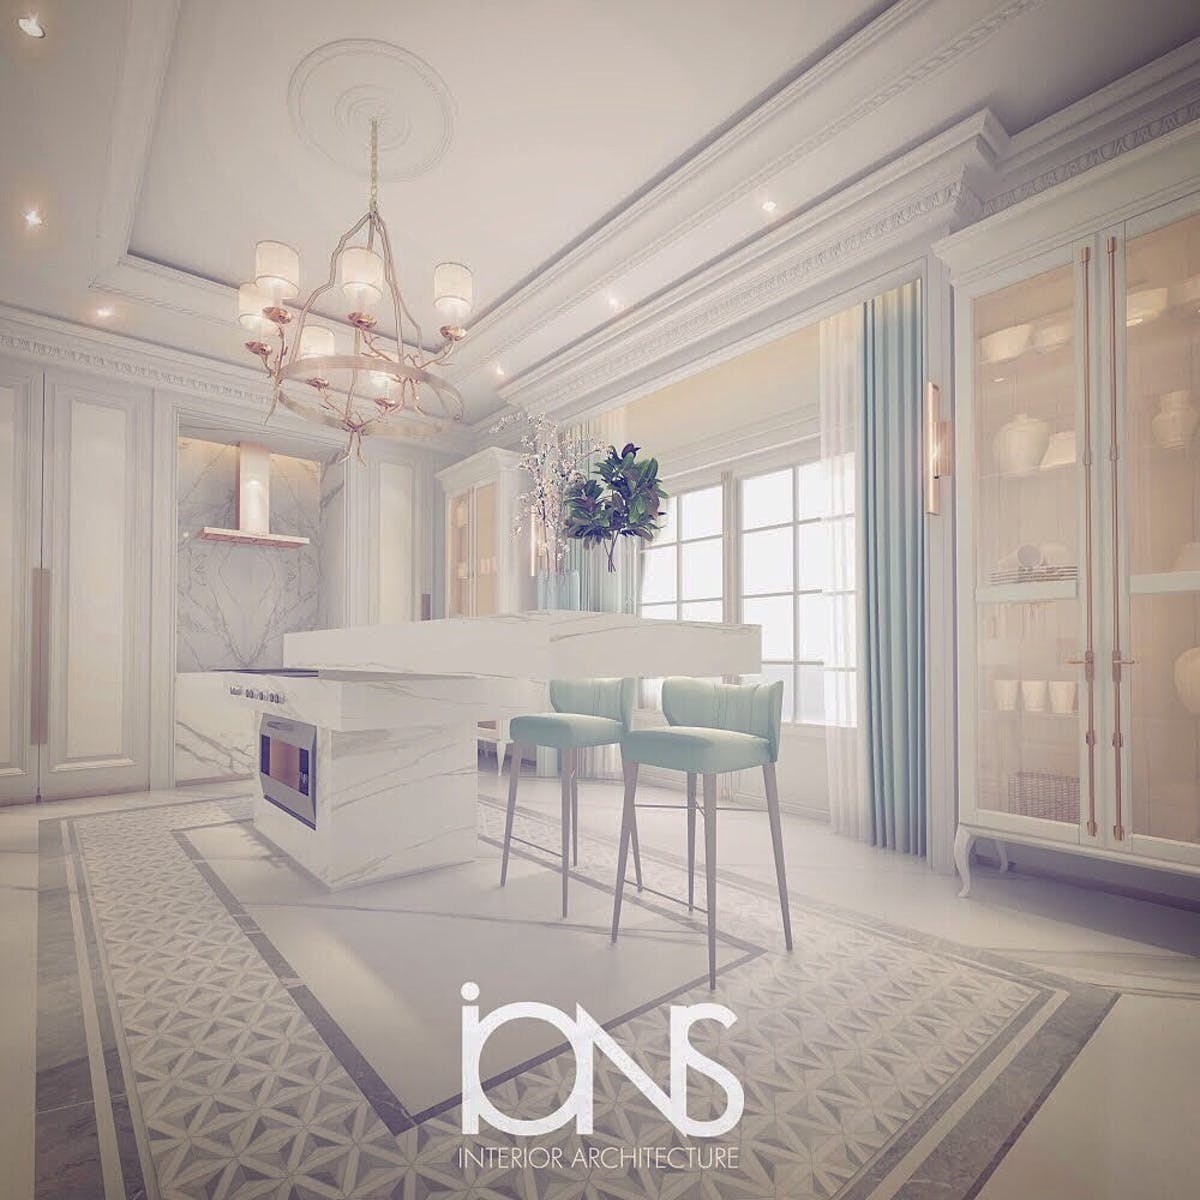 Ions Interior Design Dubai luxury design for kitchen interiors | ions design | archinect